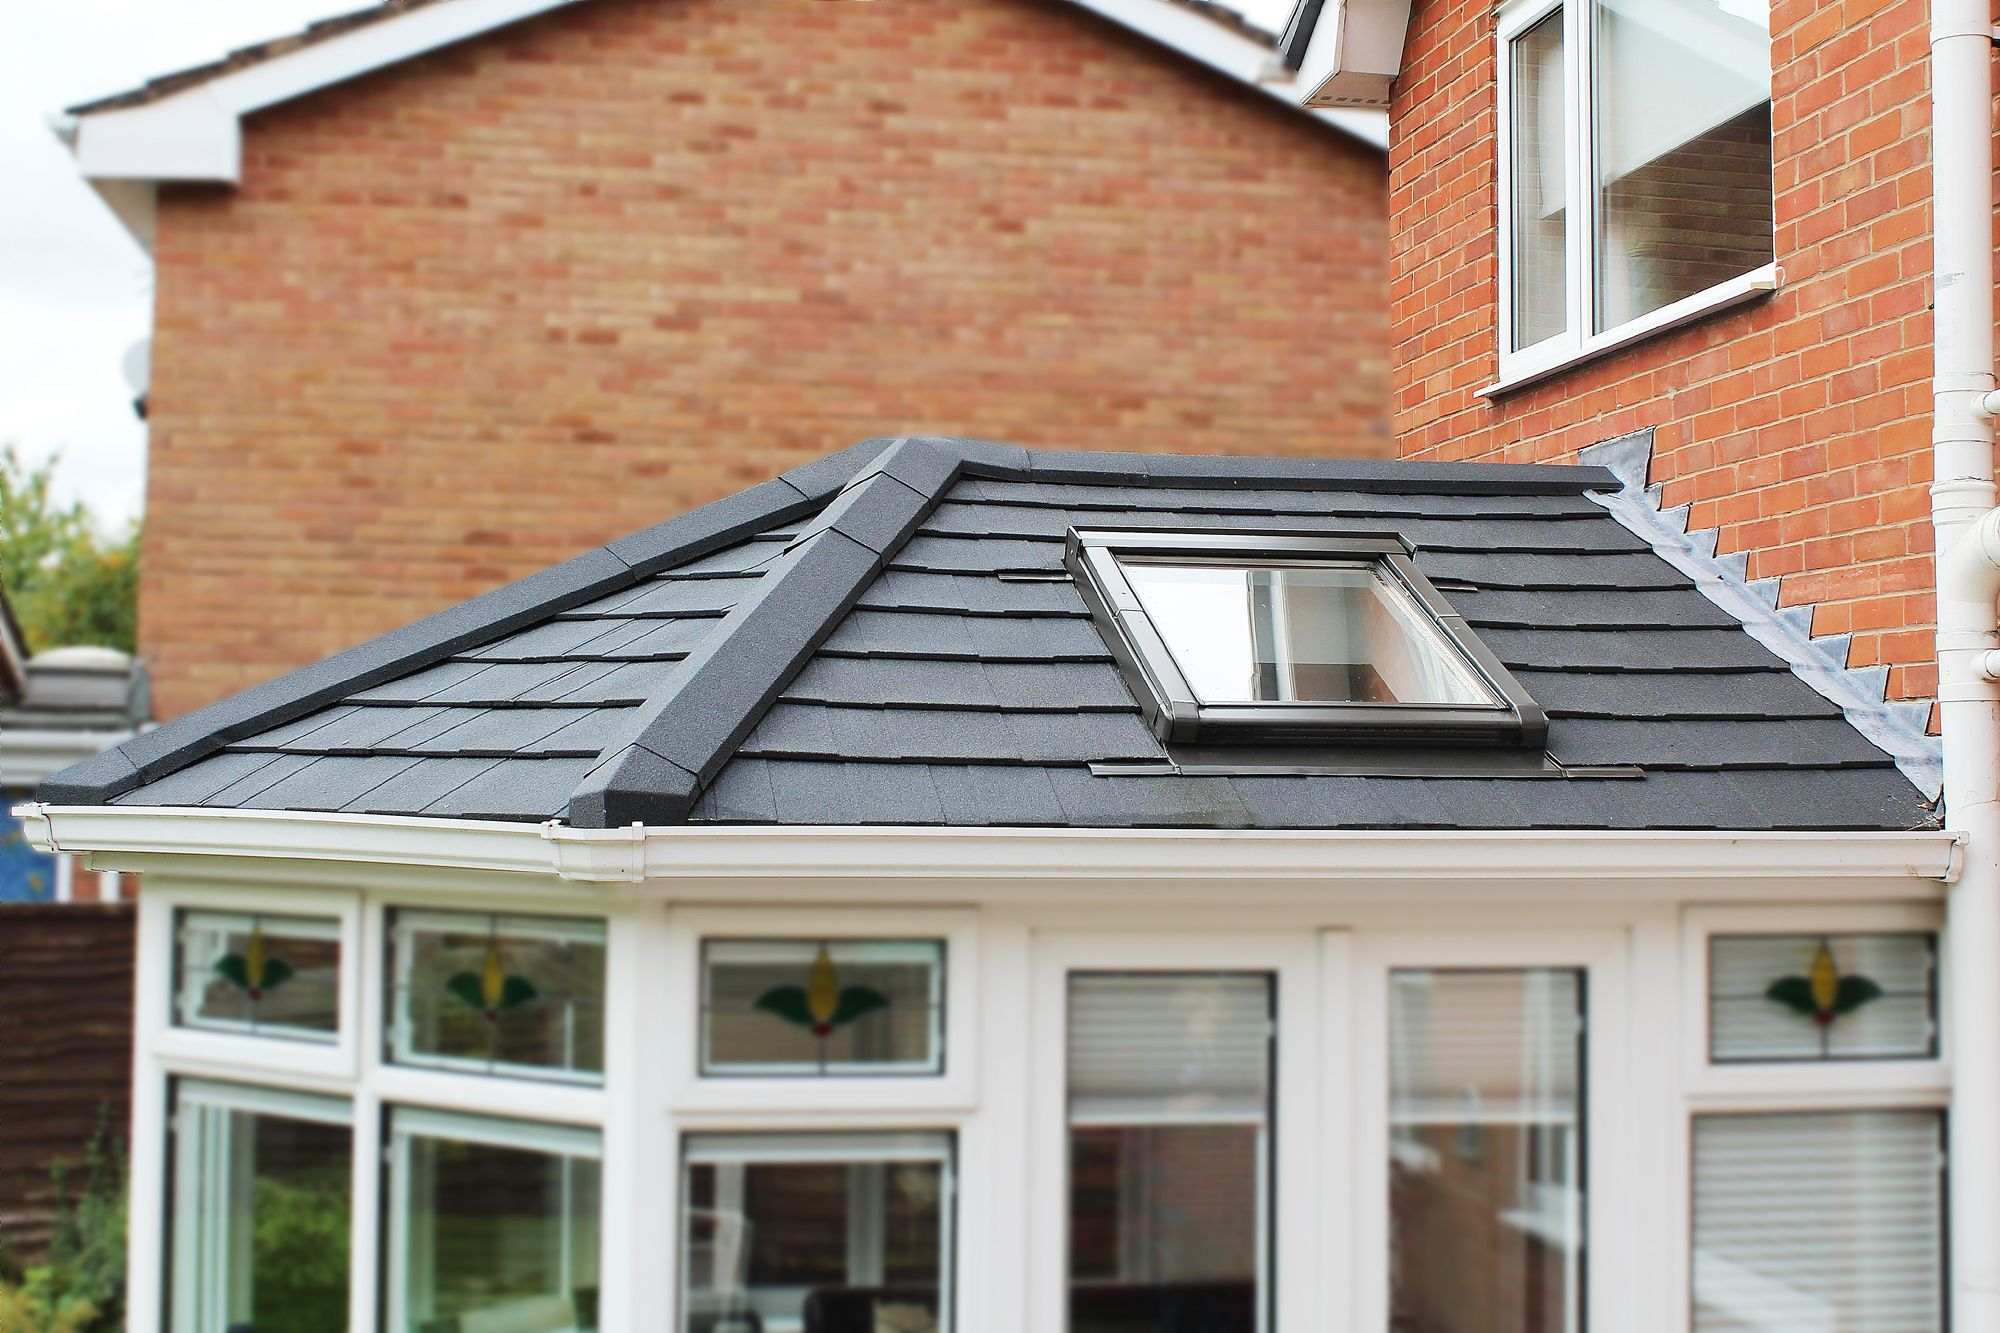 Supalite Roofing A Fantastic Light Weight Solution Offering A Solid Tiled Effect Roofing Option To Your Conserva Roofing Options Conservatory Roof Patio Doors